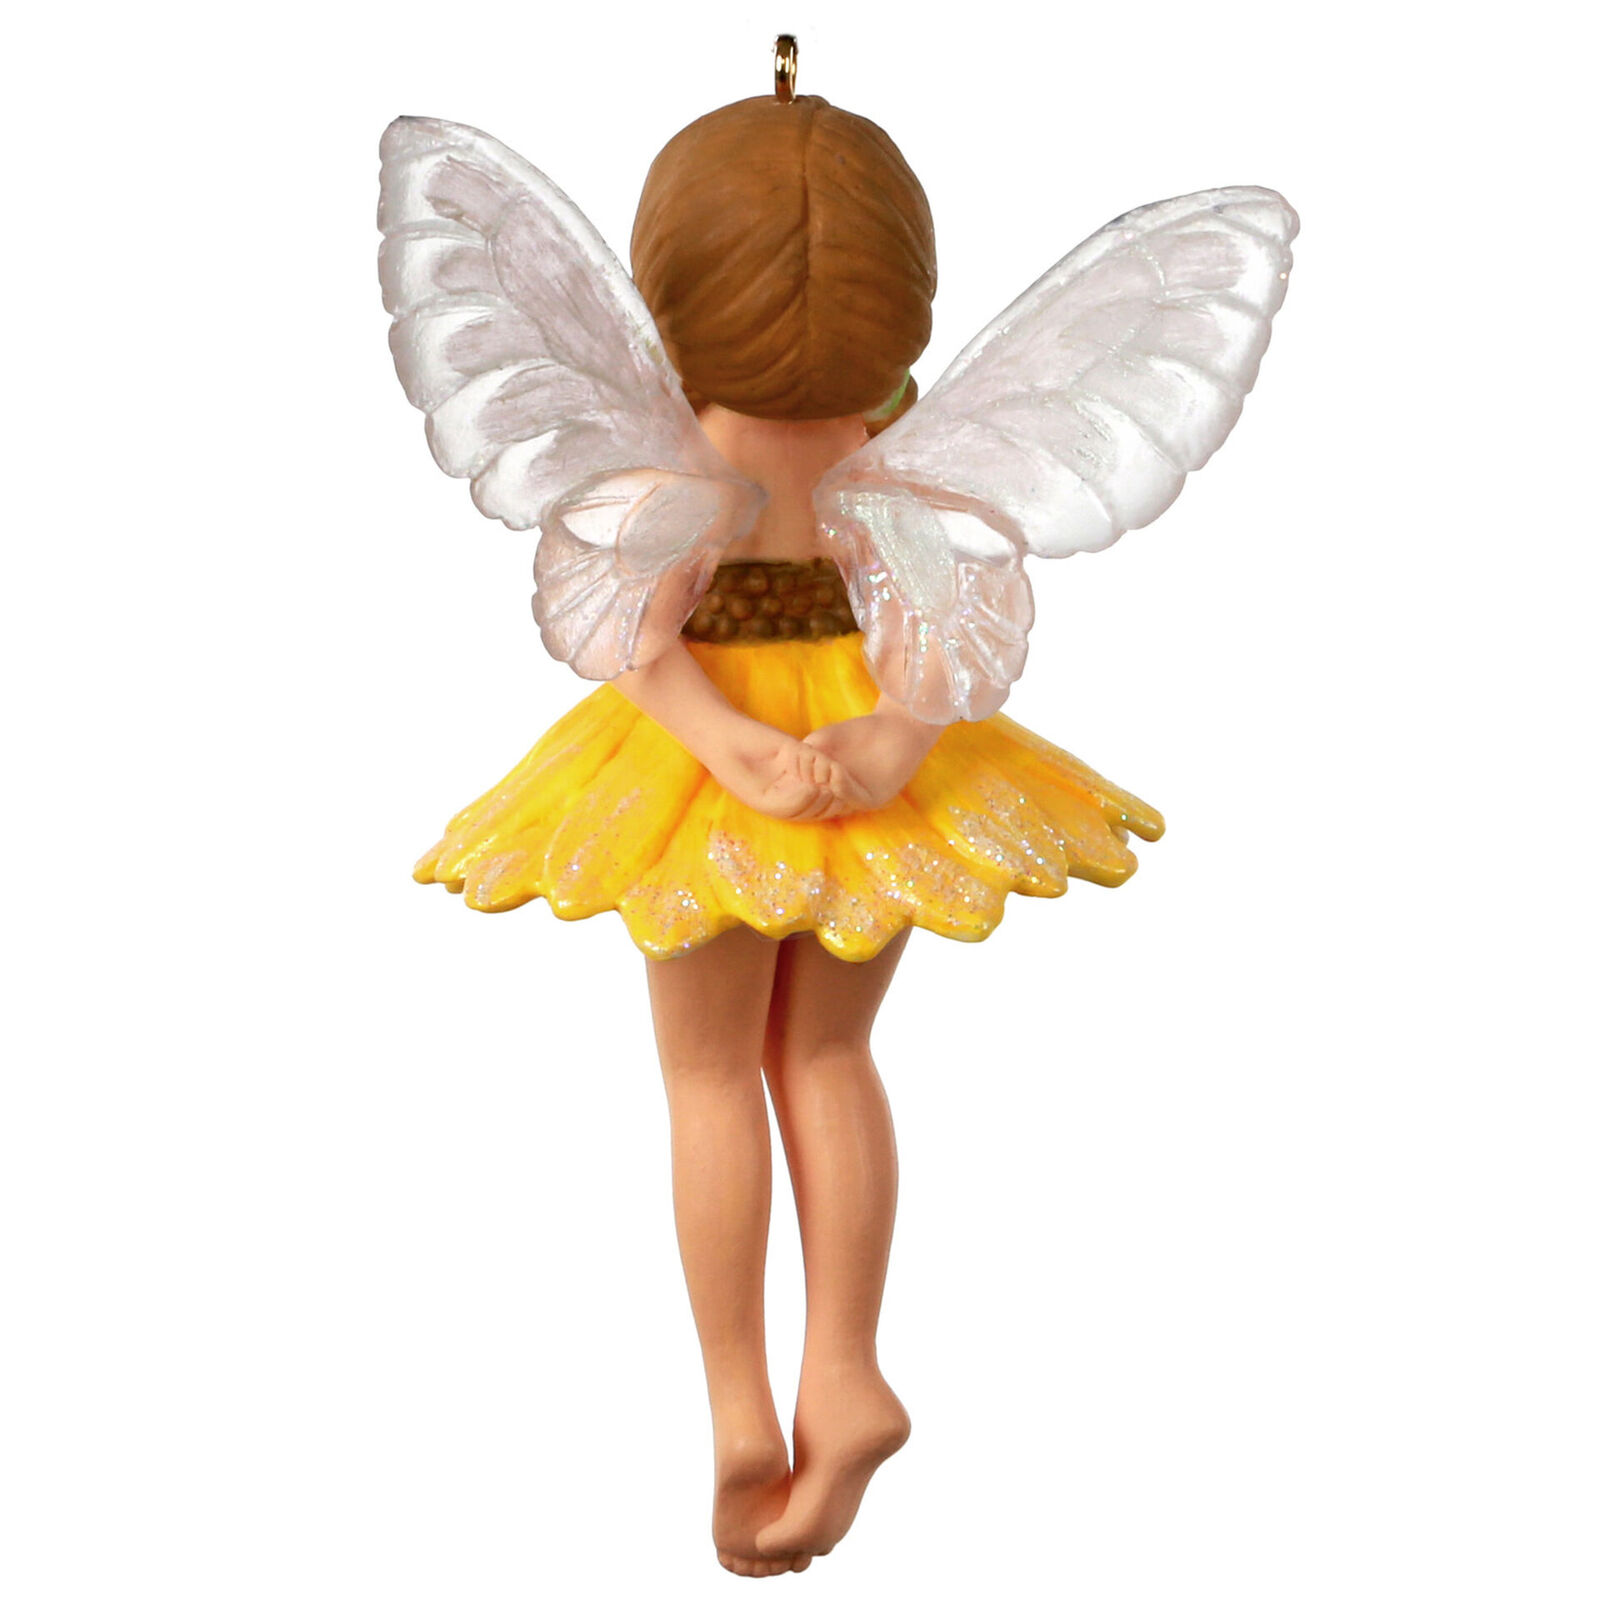 2020 Hallmark Keepsake Ornament - Fairy Messengers (Sunflower Fairy)